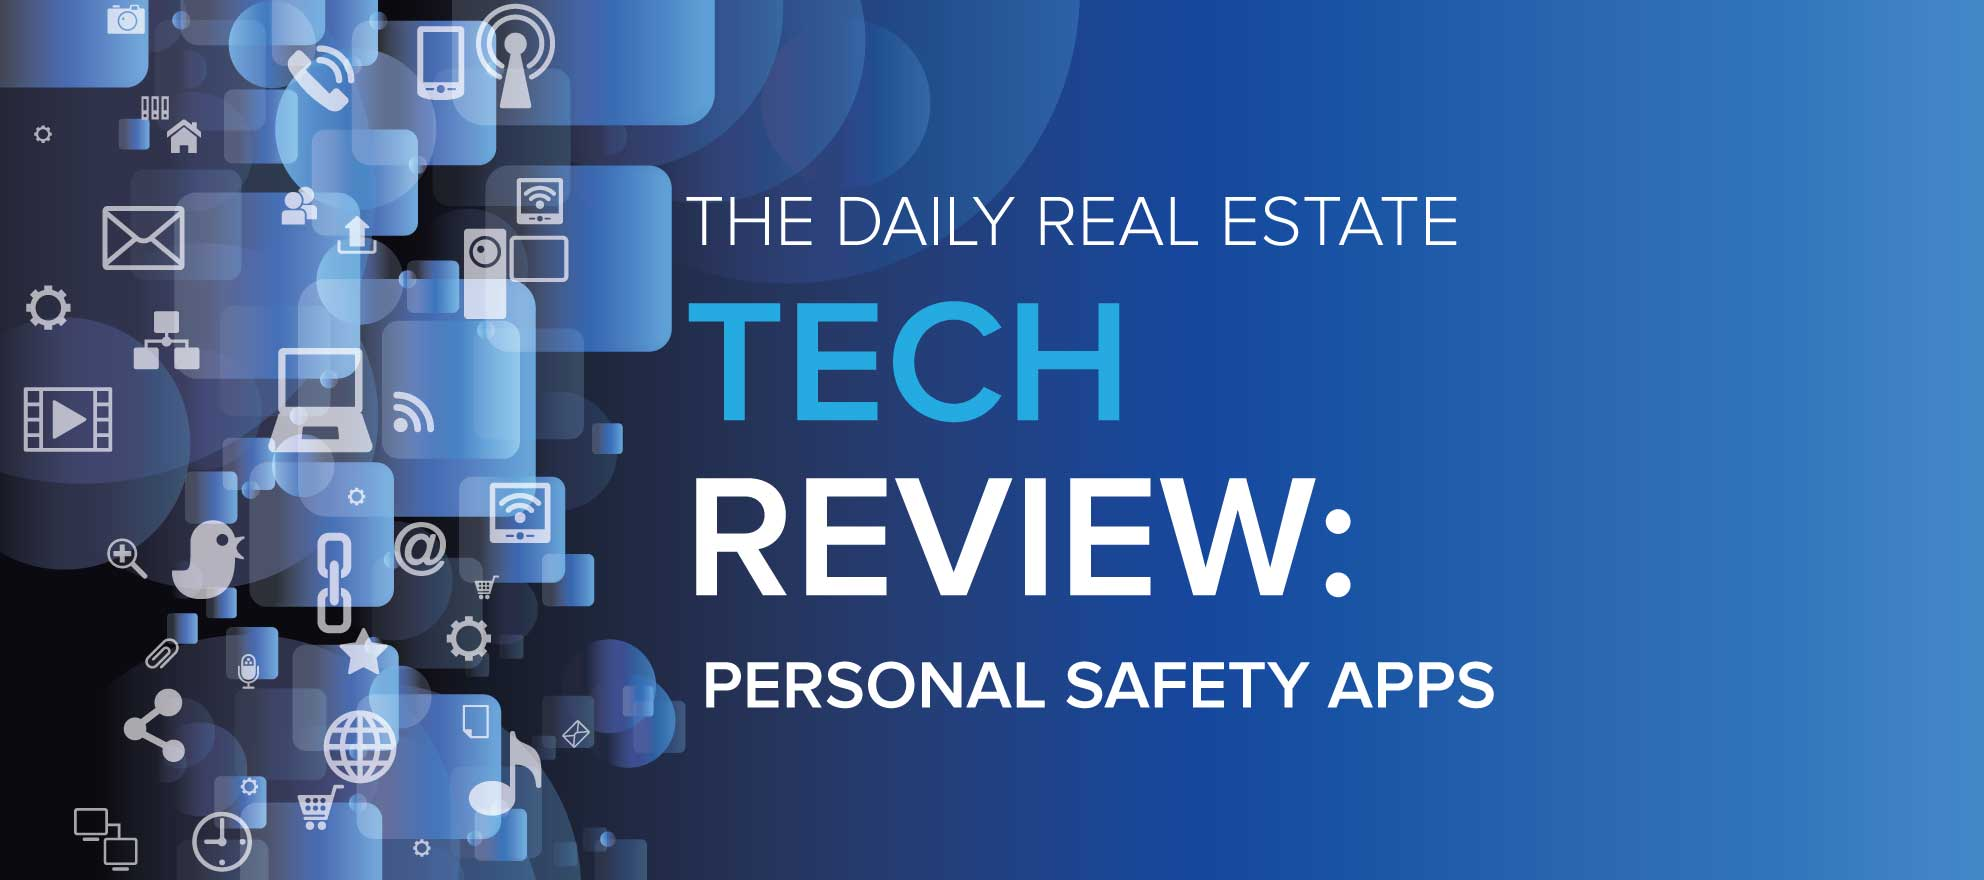 Personal safety apps and services should be on every agent's smartphone home screen